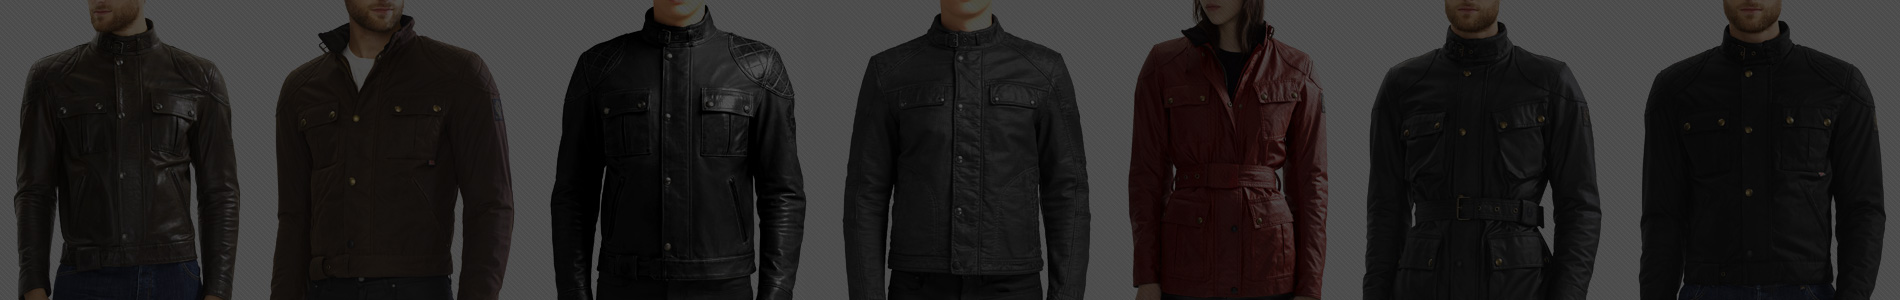 597a5ed841 Belstaff Motorcycle Jackets at The Cafe Racer | Free UK Delivery